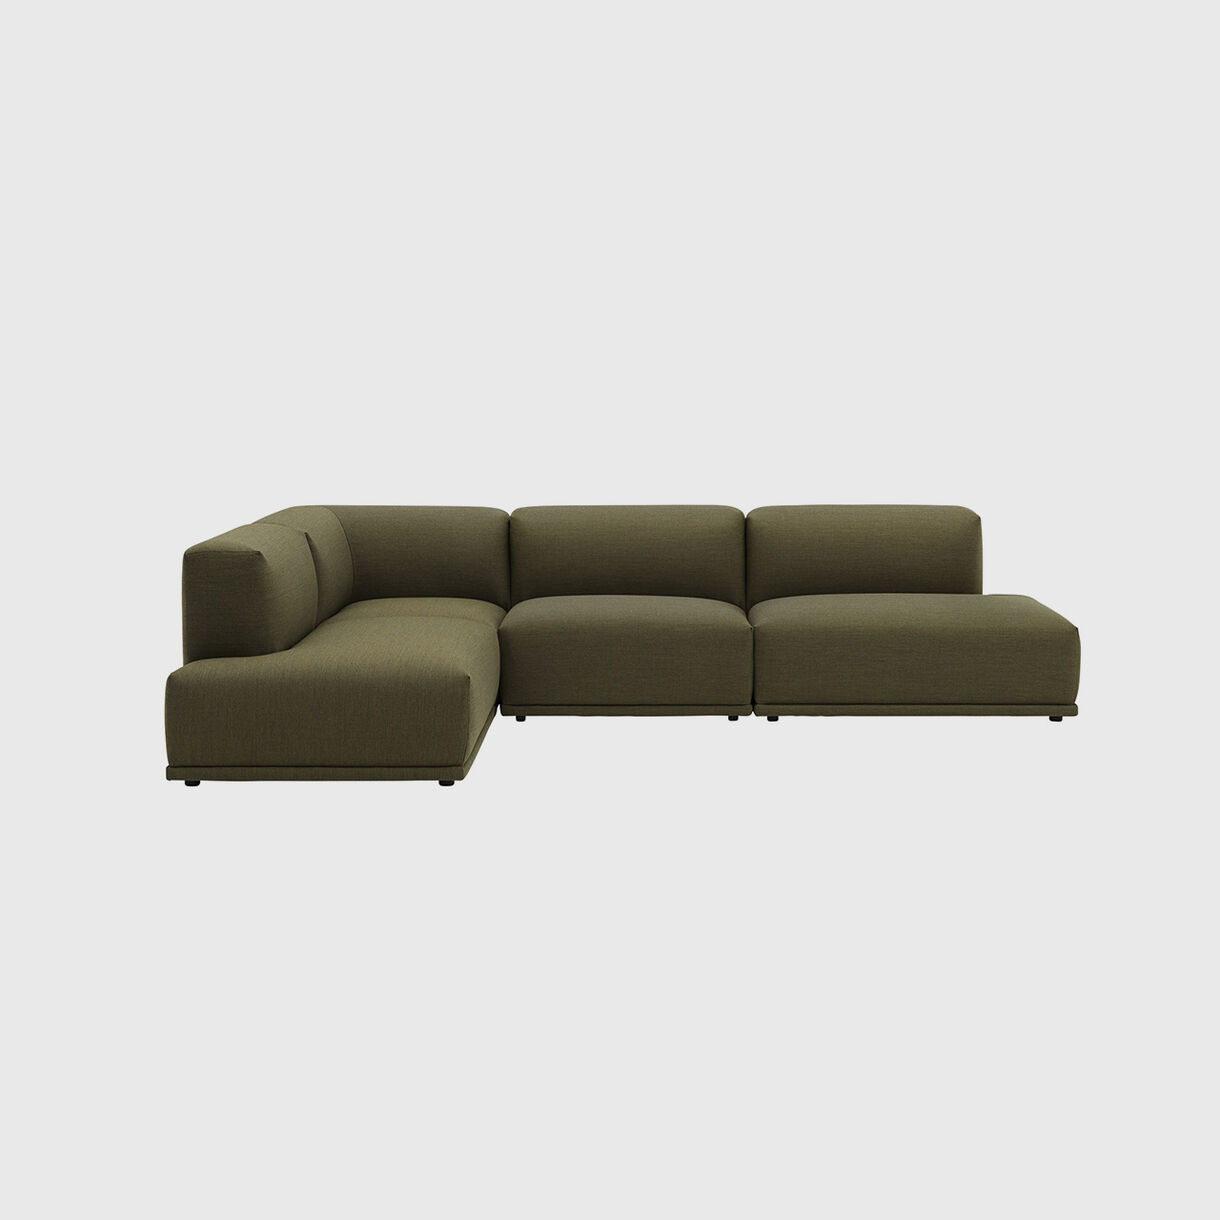 Connect Modular Corner Sofa, Canvas 964